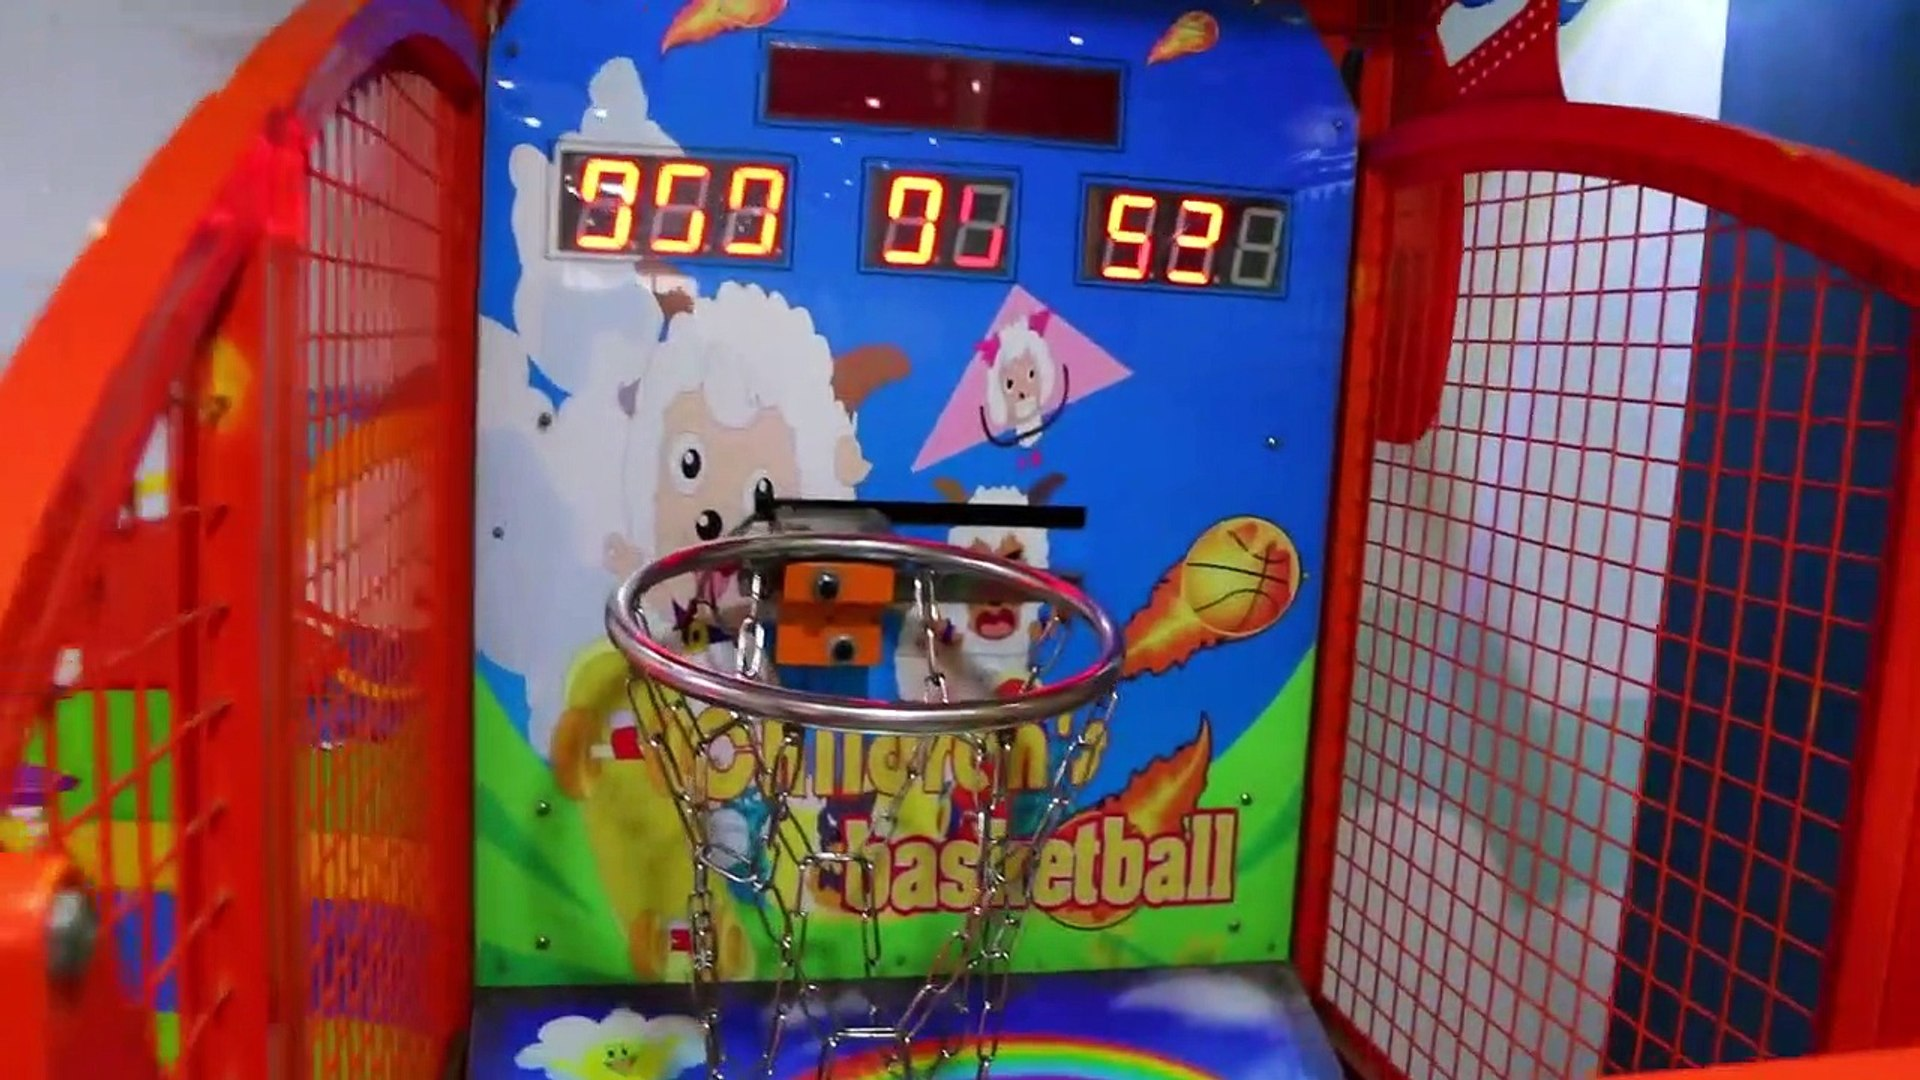 Basketball Challenge Indoor Basketball Game for Kids and children-lx4Ae1